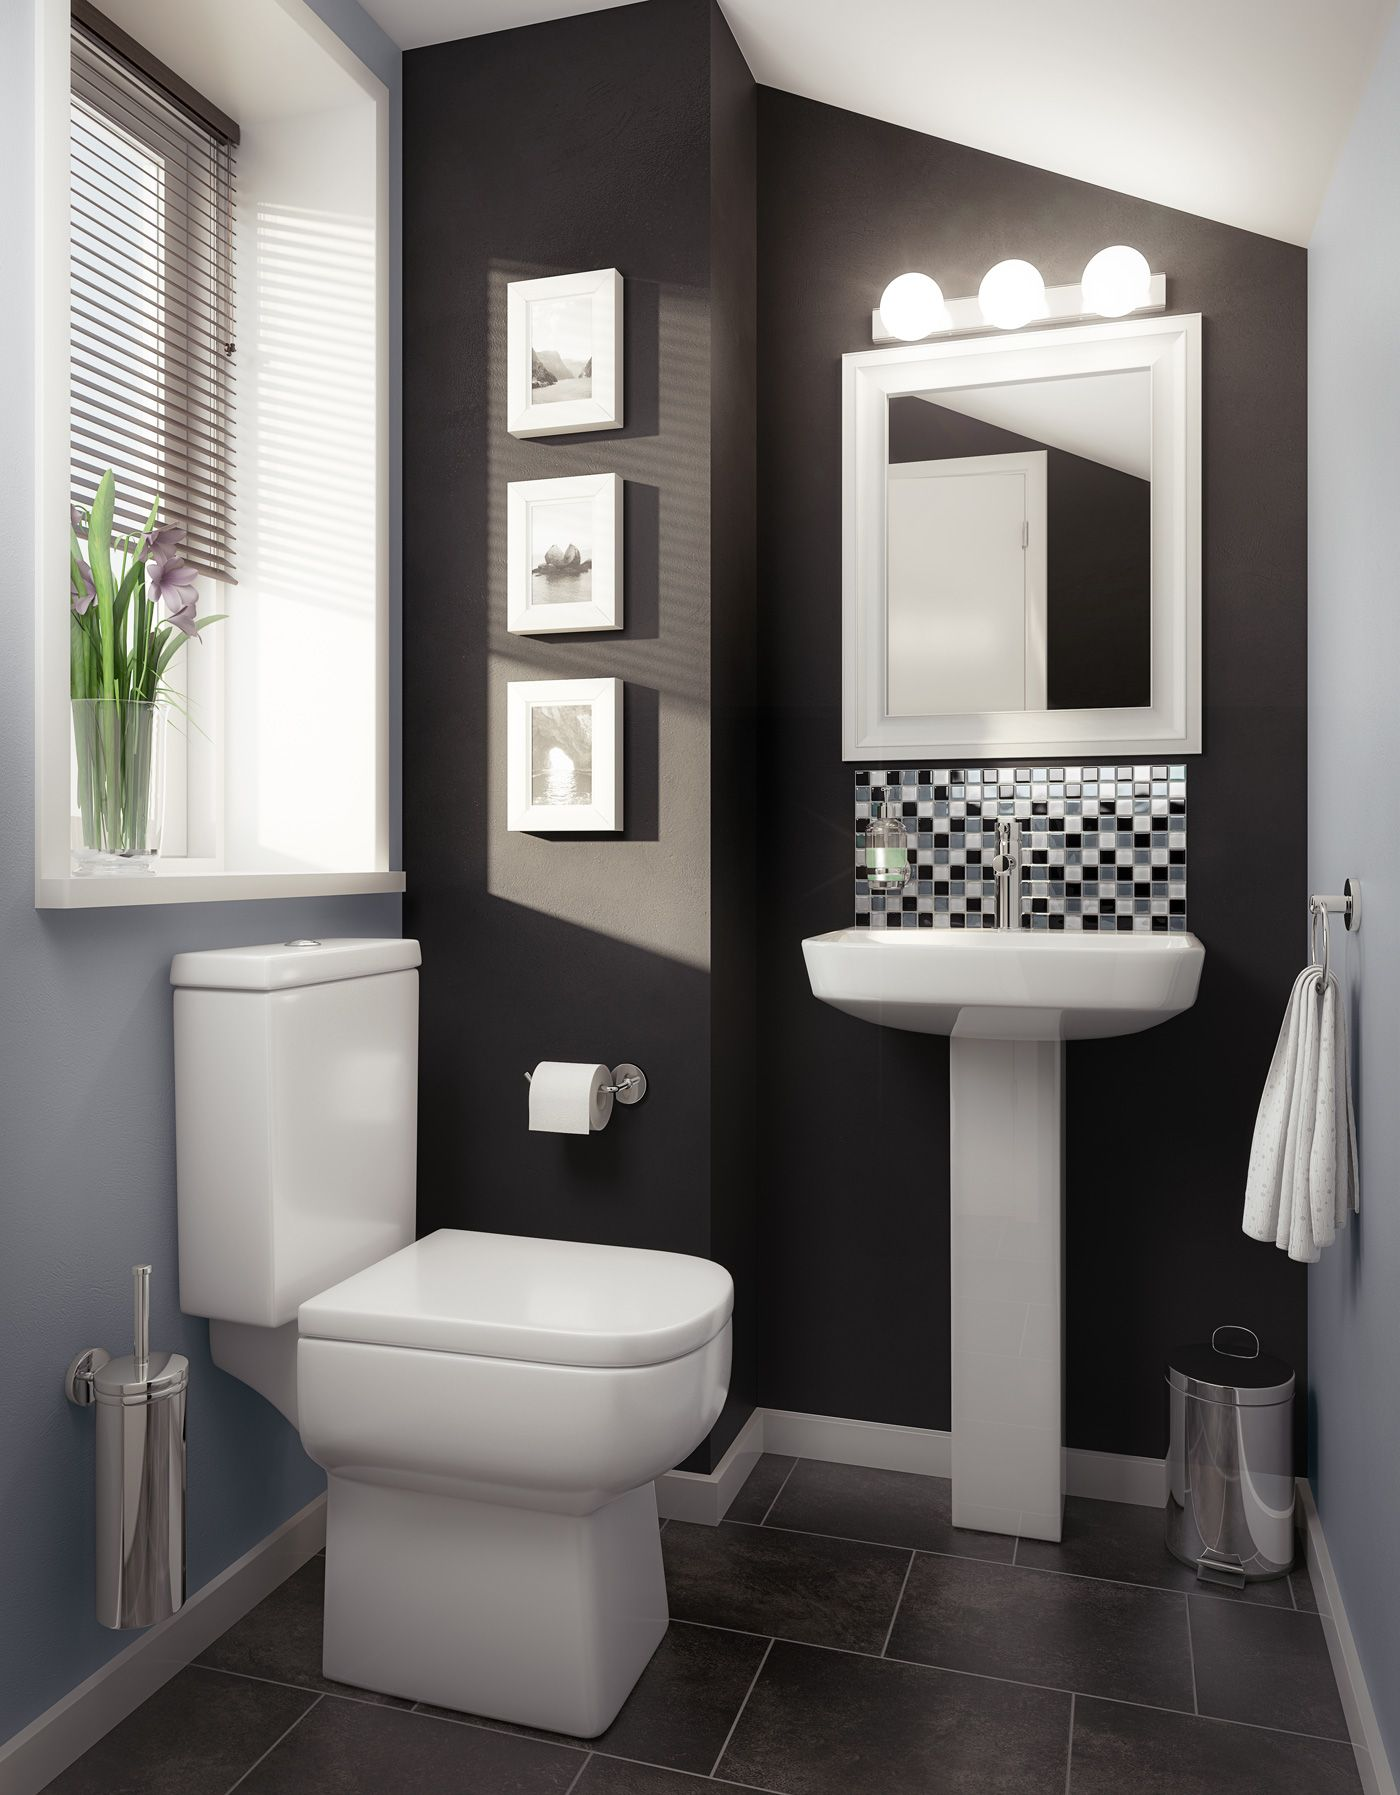 Cloakroom Ideas Images Small Cloakroom Ideas Google Search T Small Bathroom